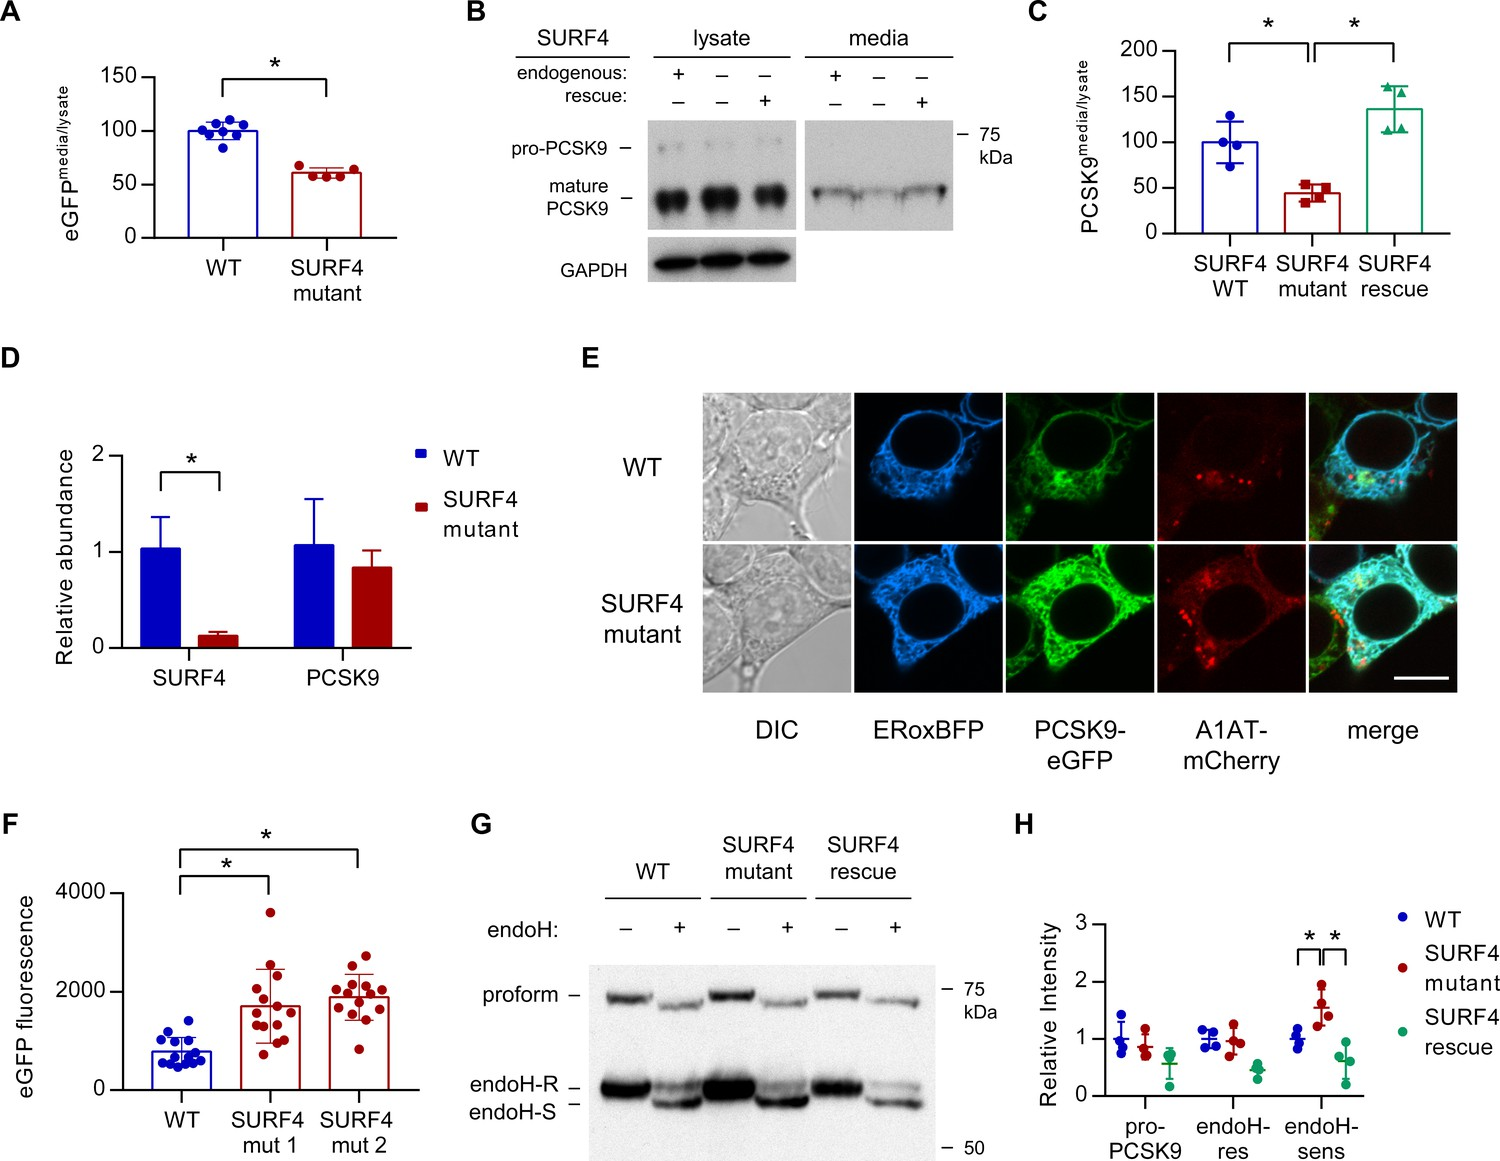 The Cargo Receptor Surf4 Promotes Efficient Cellular Secretion Moonshine Diagram Related Keywords Suggestions Mutagenesis Causes A Decrease In Pcsk9 Extracellular And An Accumulation Of Er